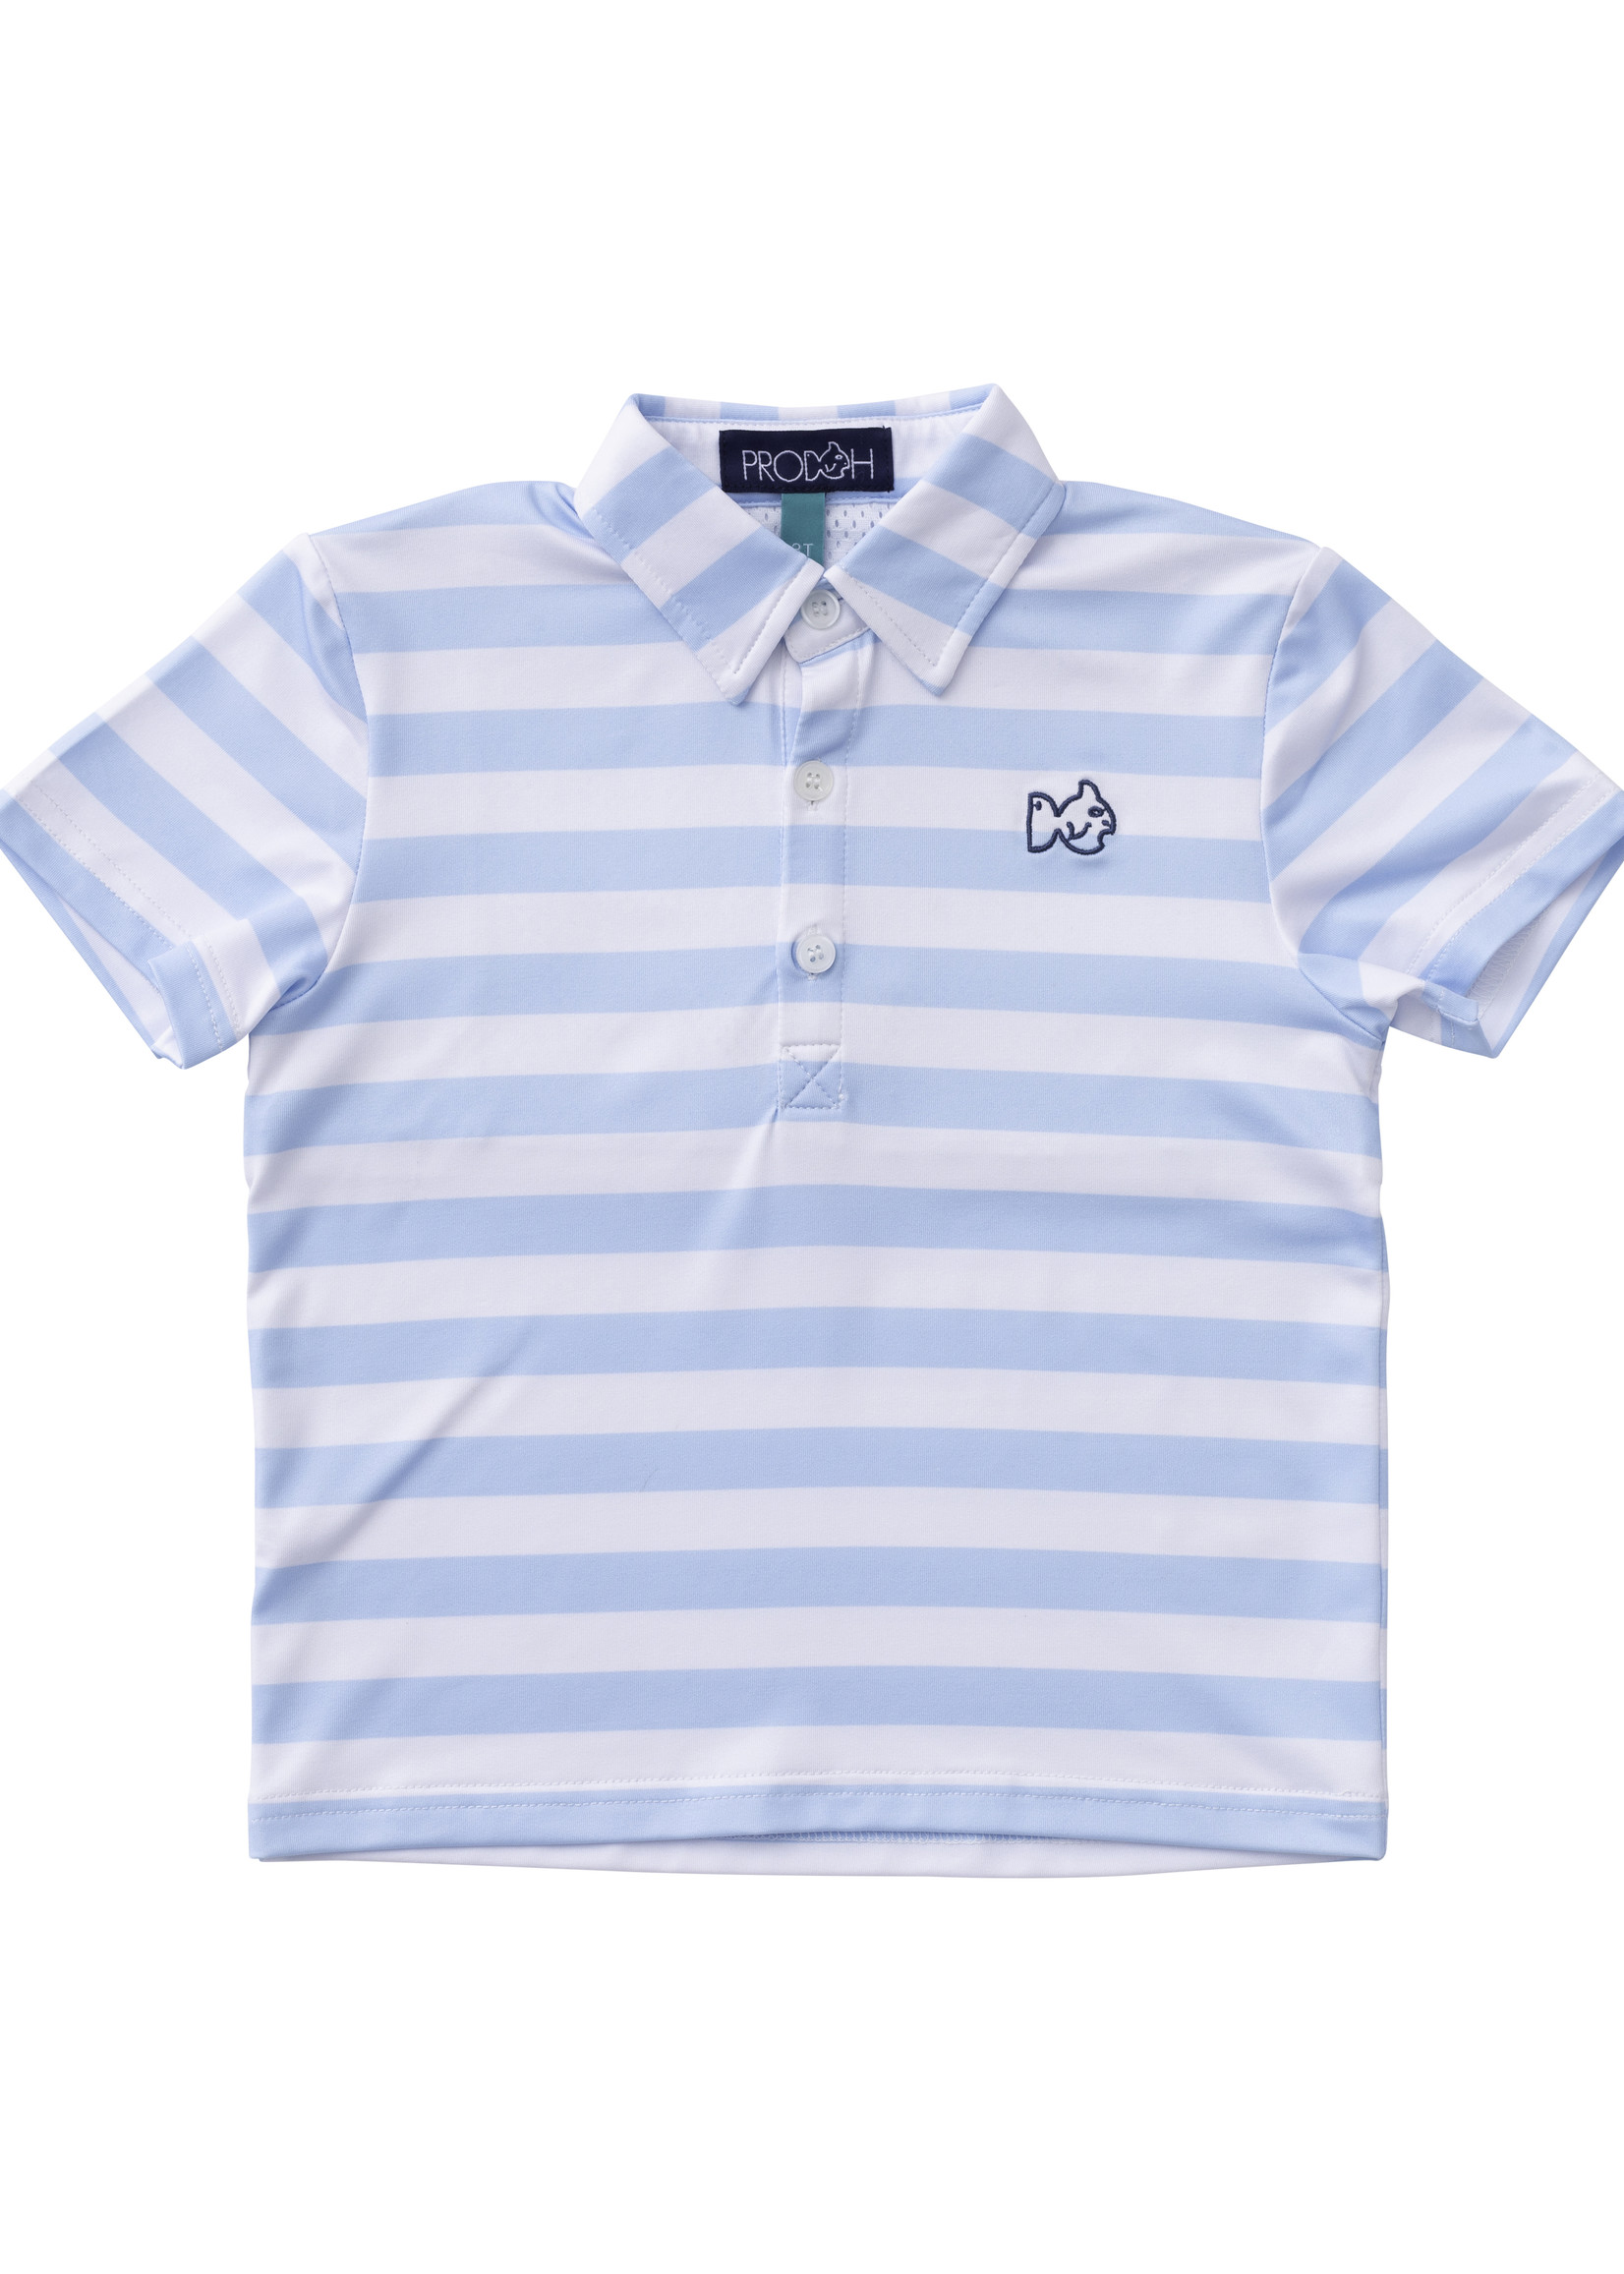 ARTIC PERFORMANCE POLO